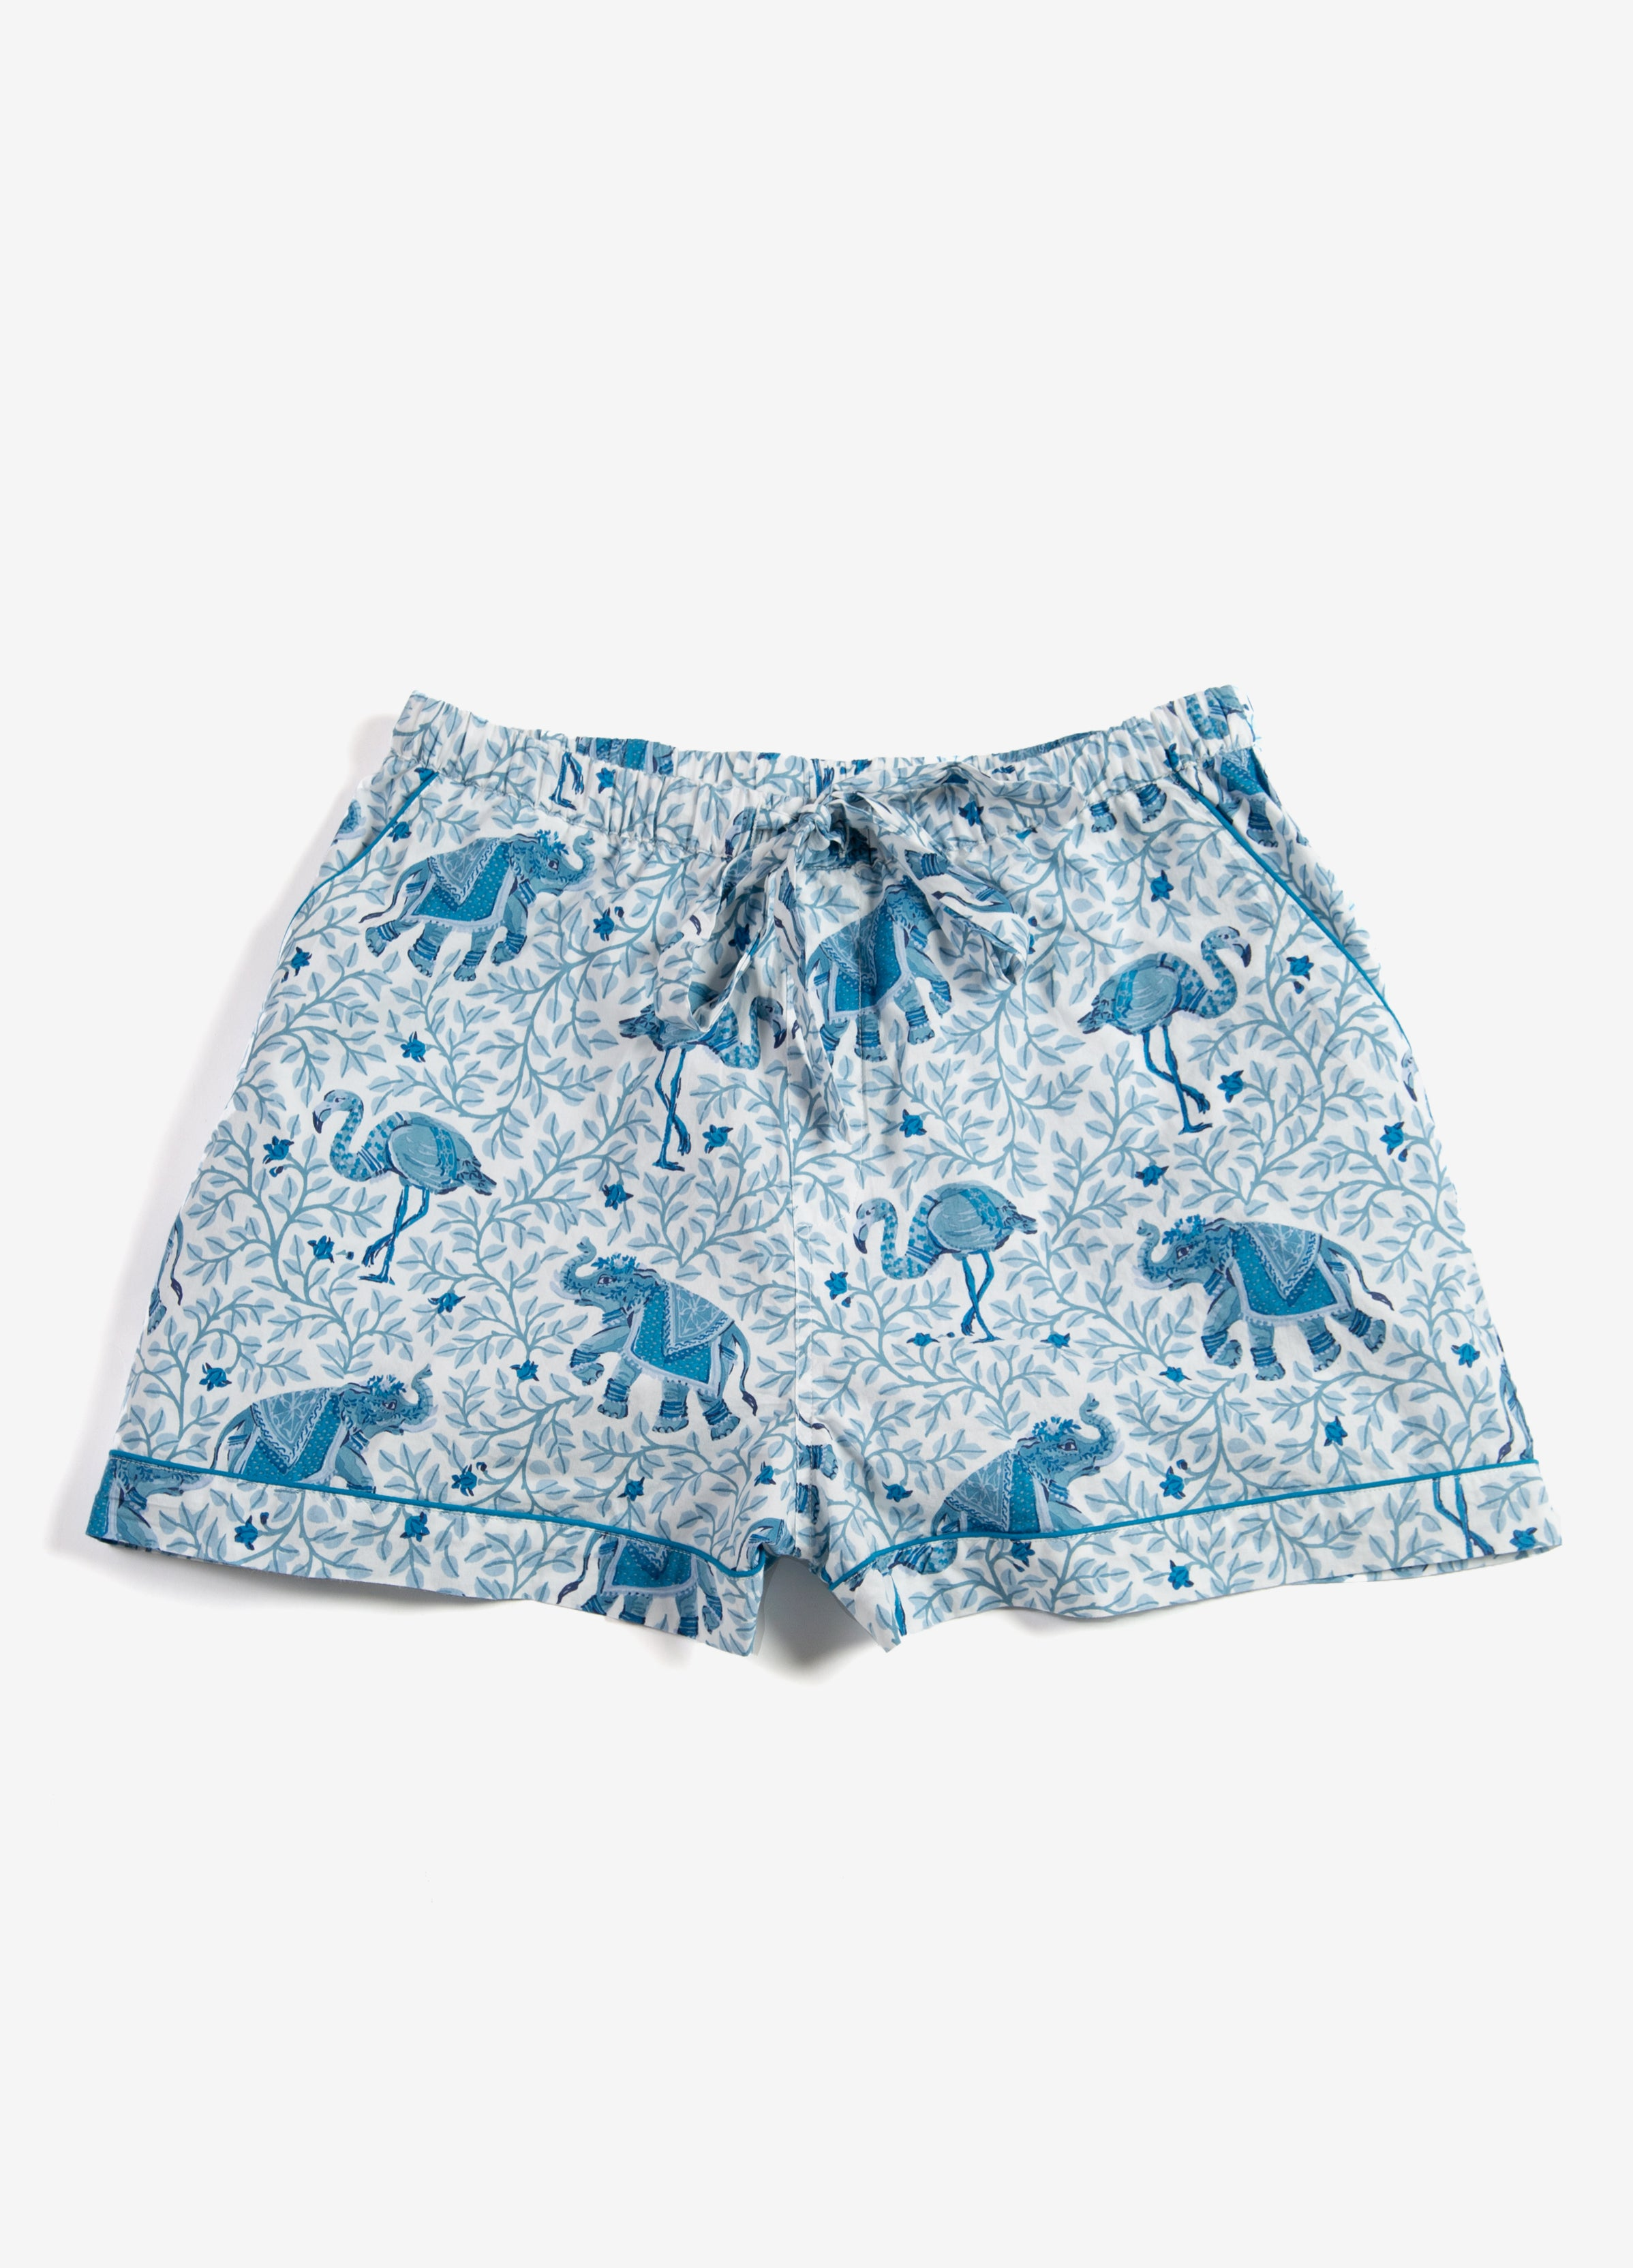 Flamenco - Pajama Shorts - Pale Blue